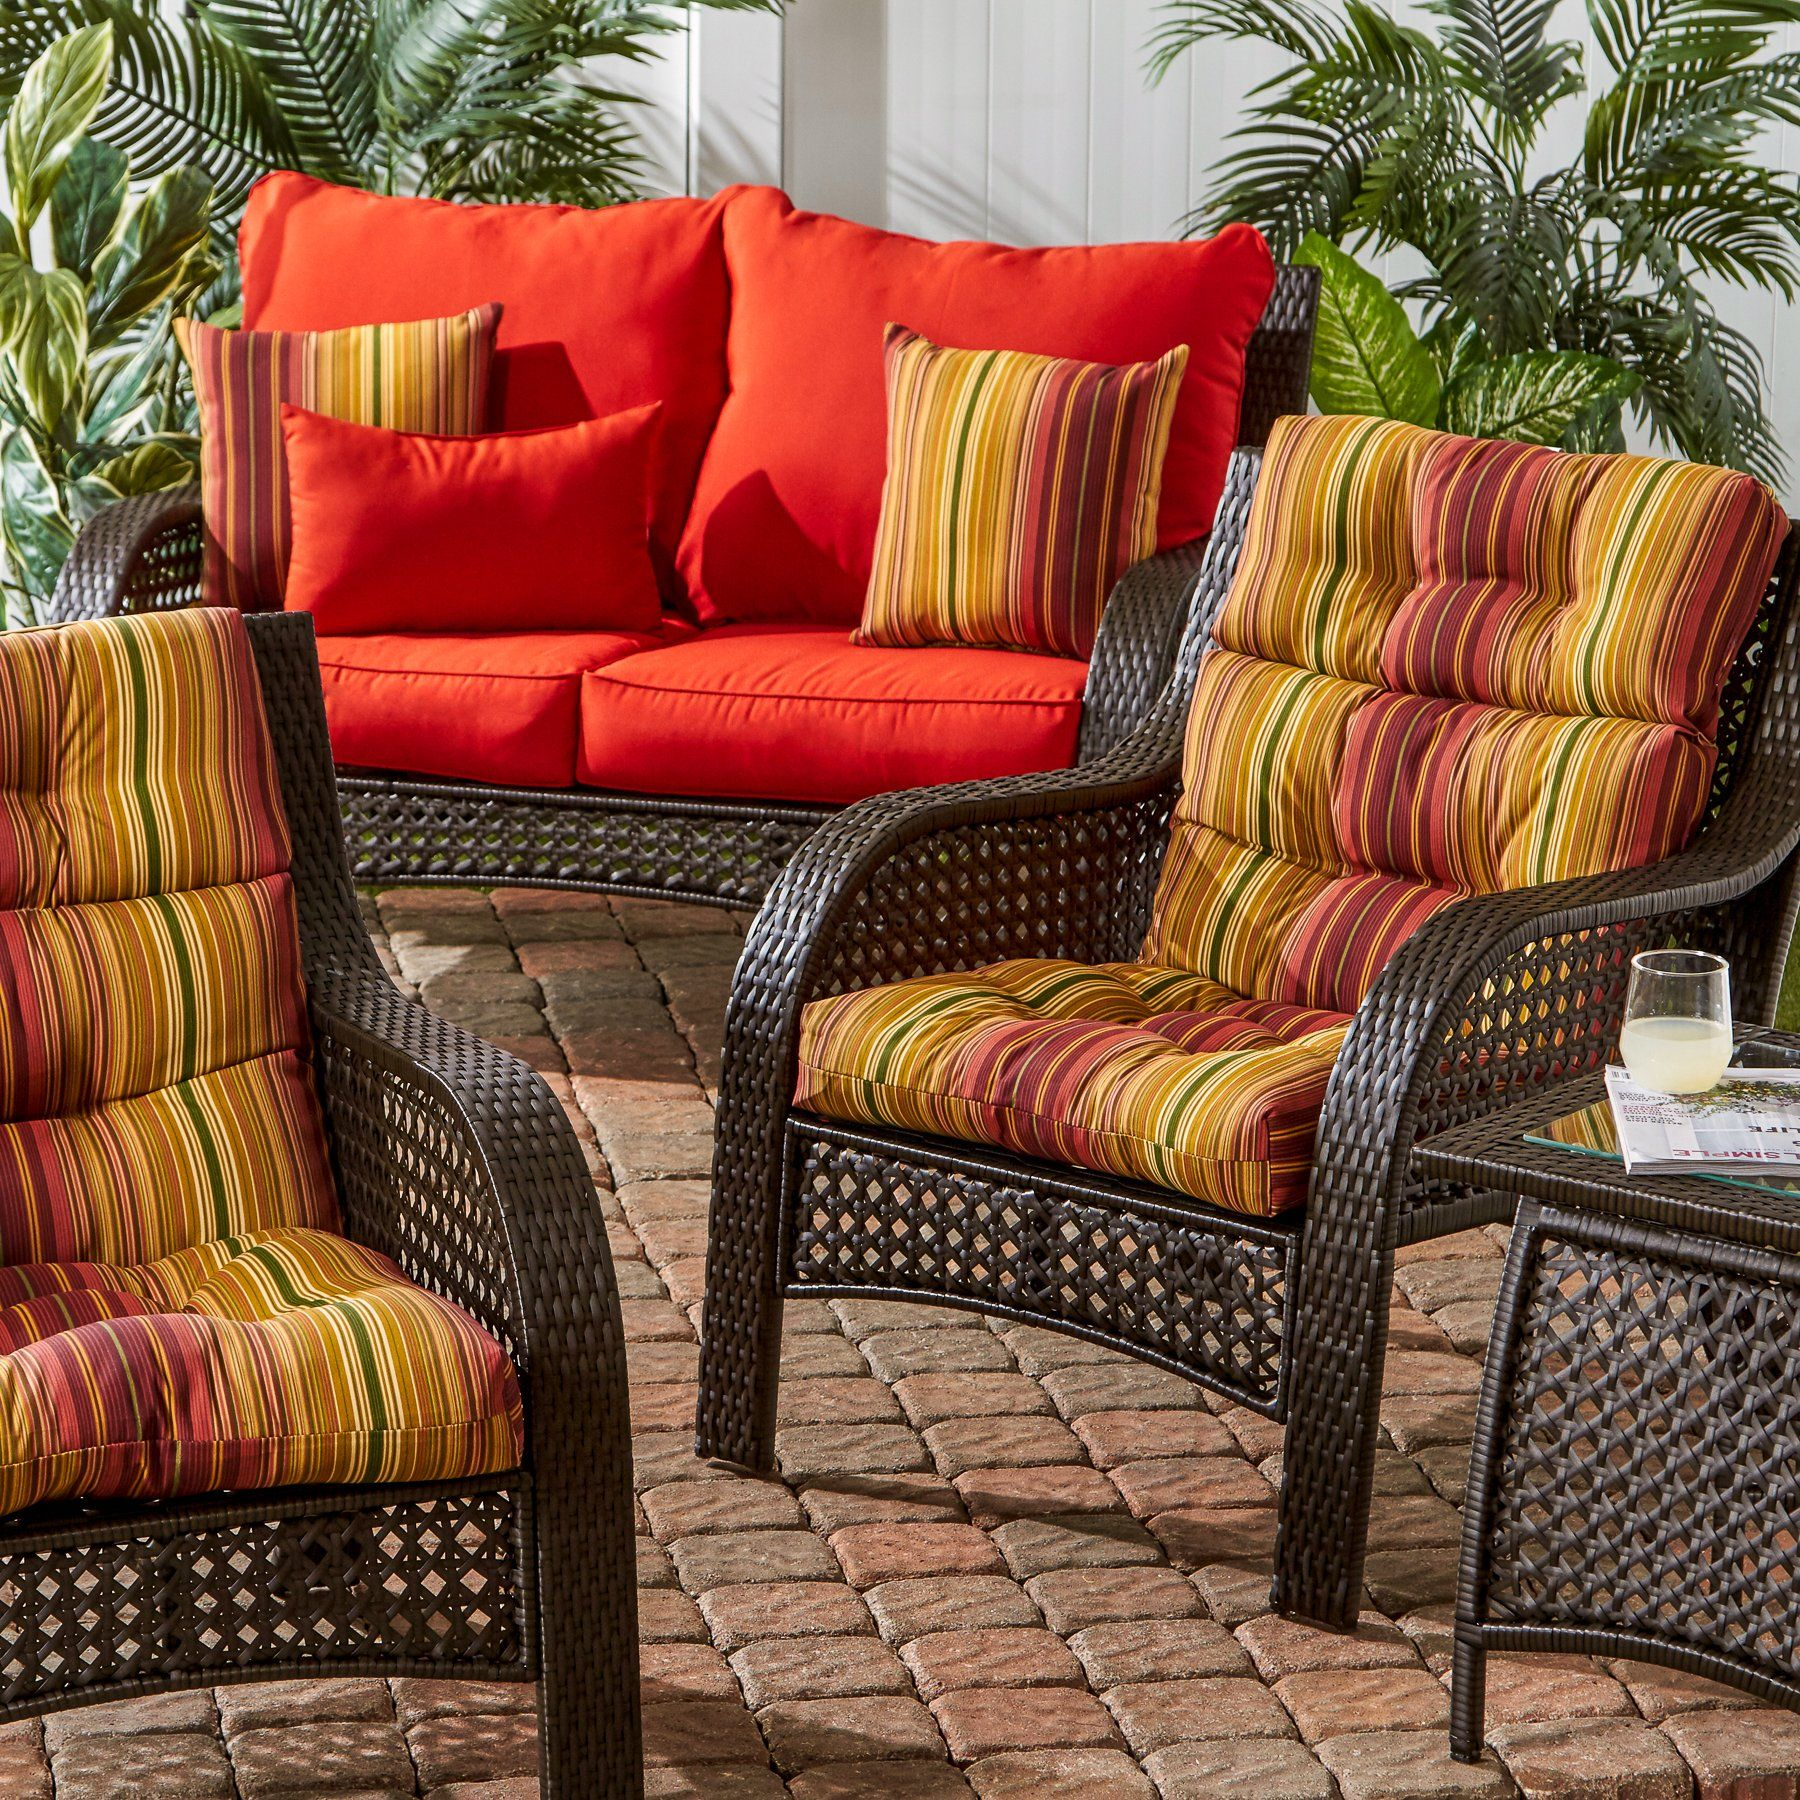 Greendale home fashions indooroutdoor high back chair